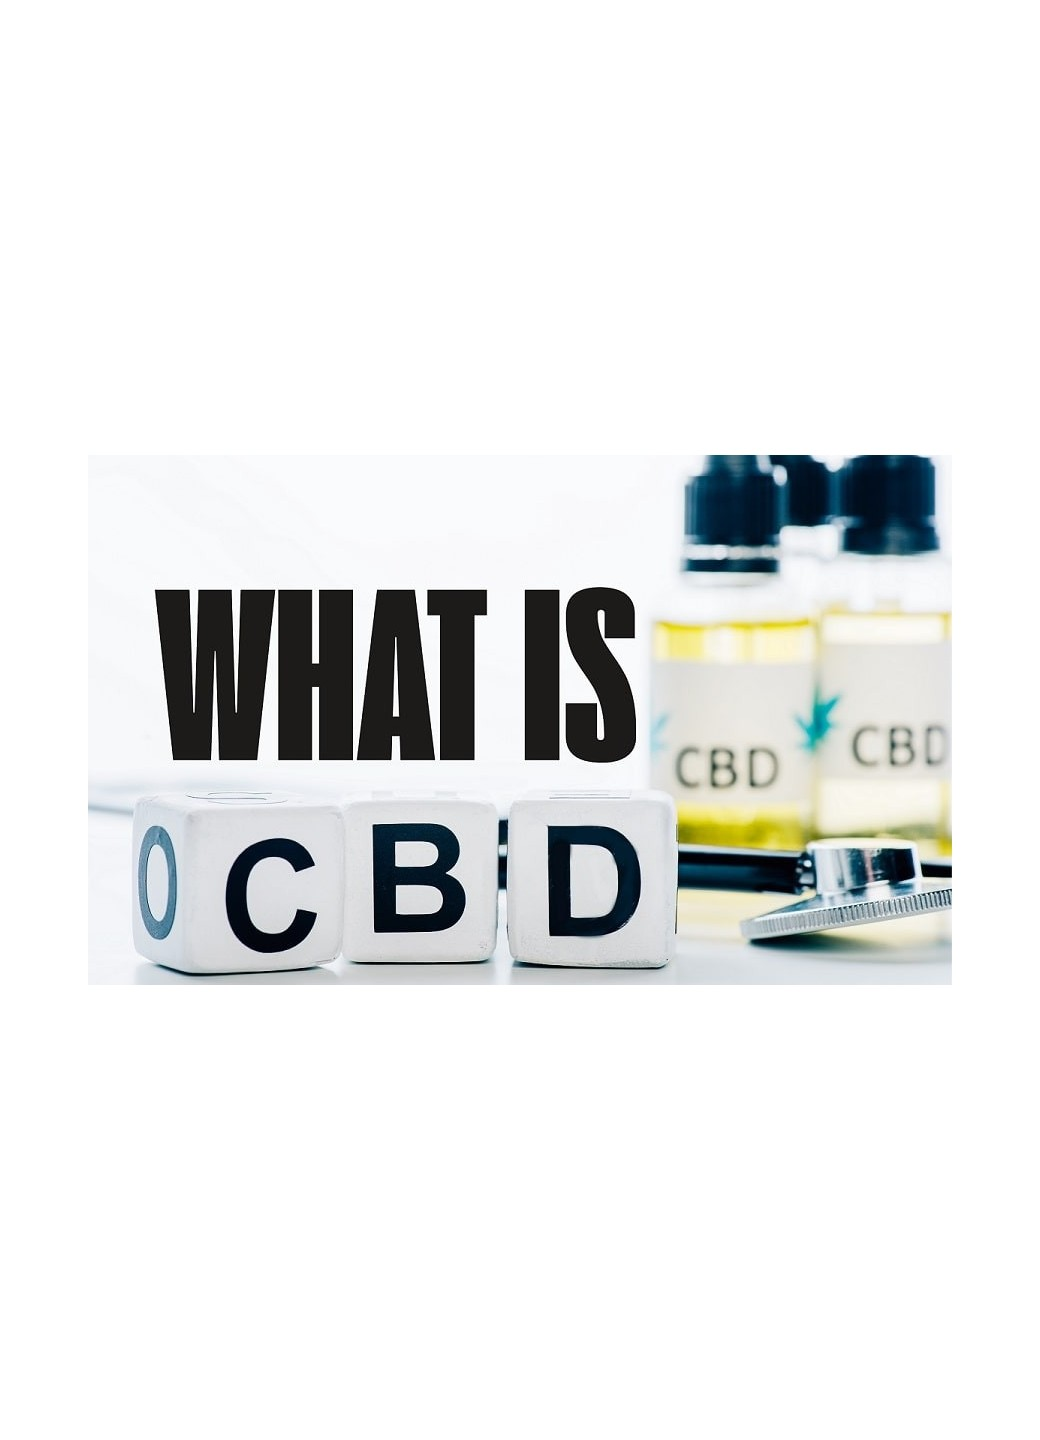 Common CBD questions answered